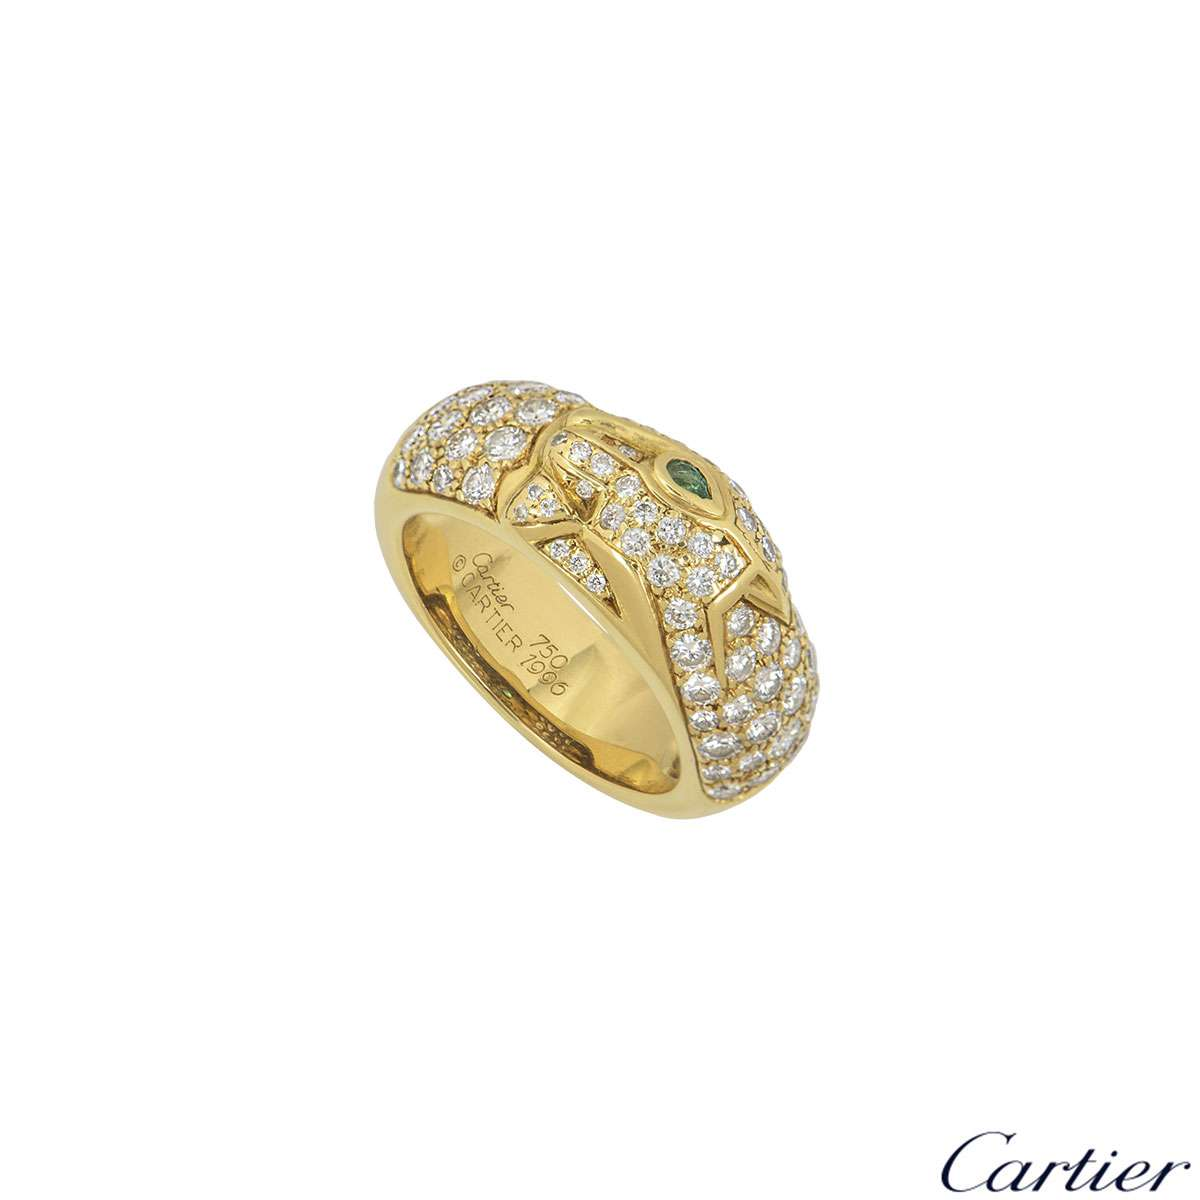 Cartier 18k Yellow Gold Diamond Set Panthere Ring